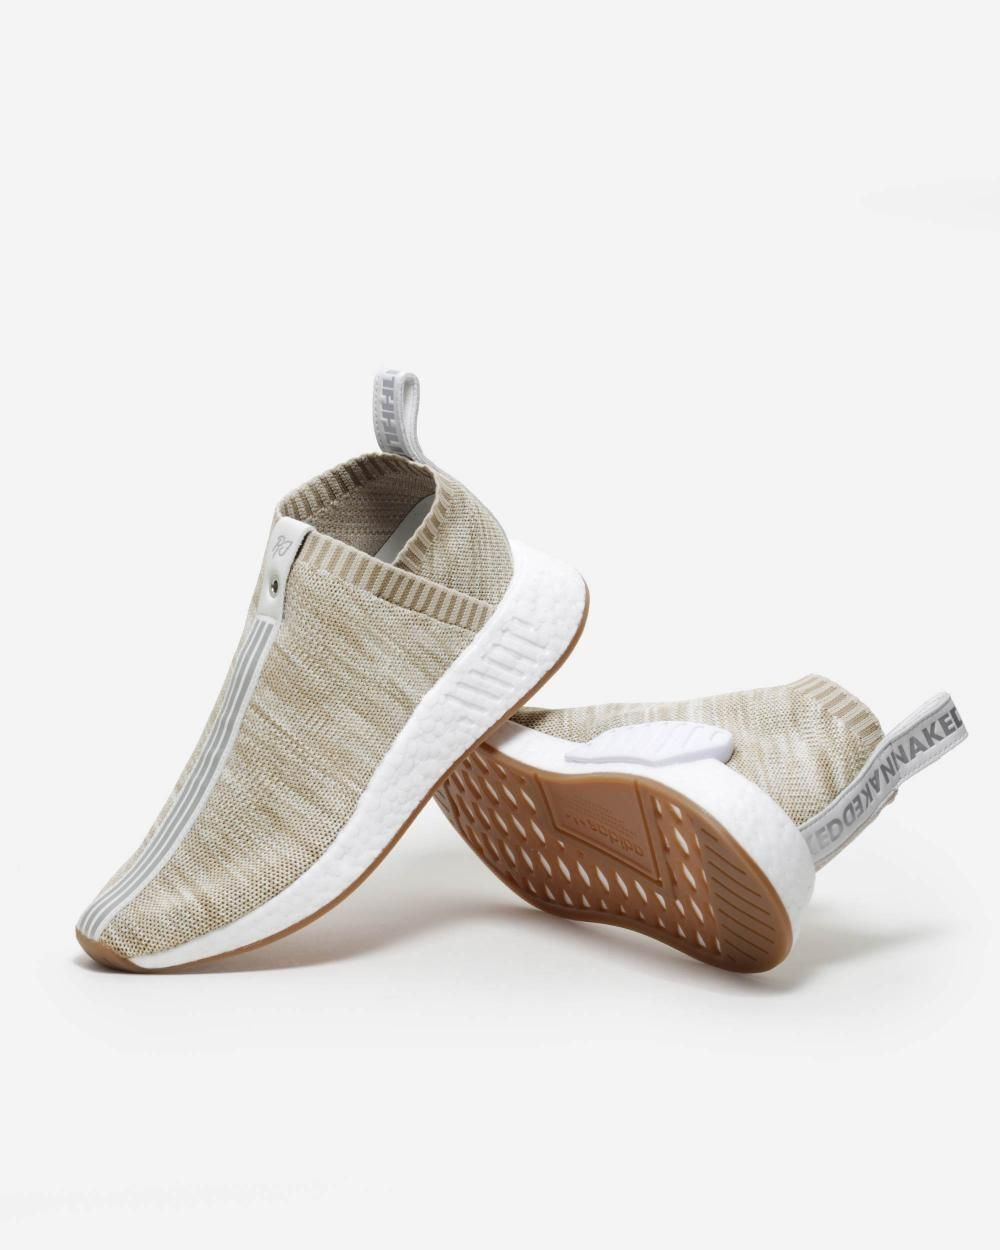 check out 5c72d d8fbb Adidas Originals - Naked x Kith x adidas Consortium NMD CS2